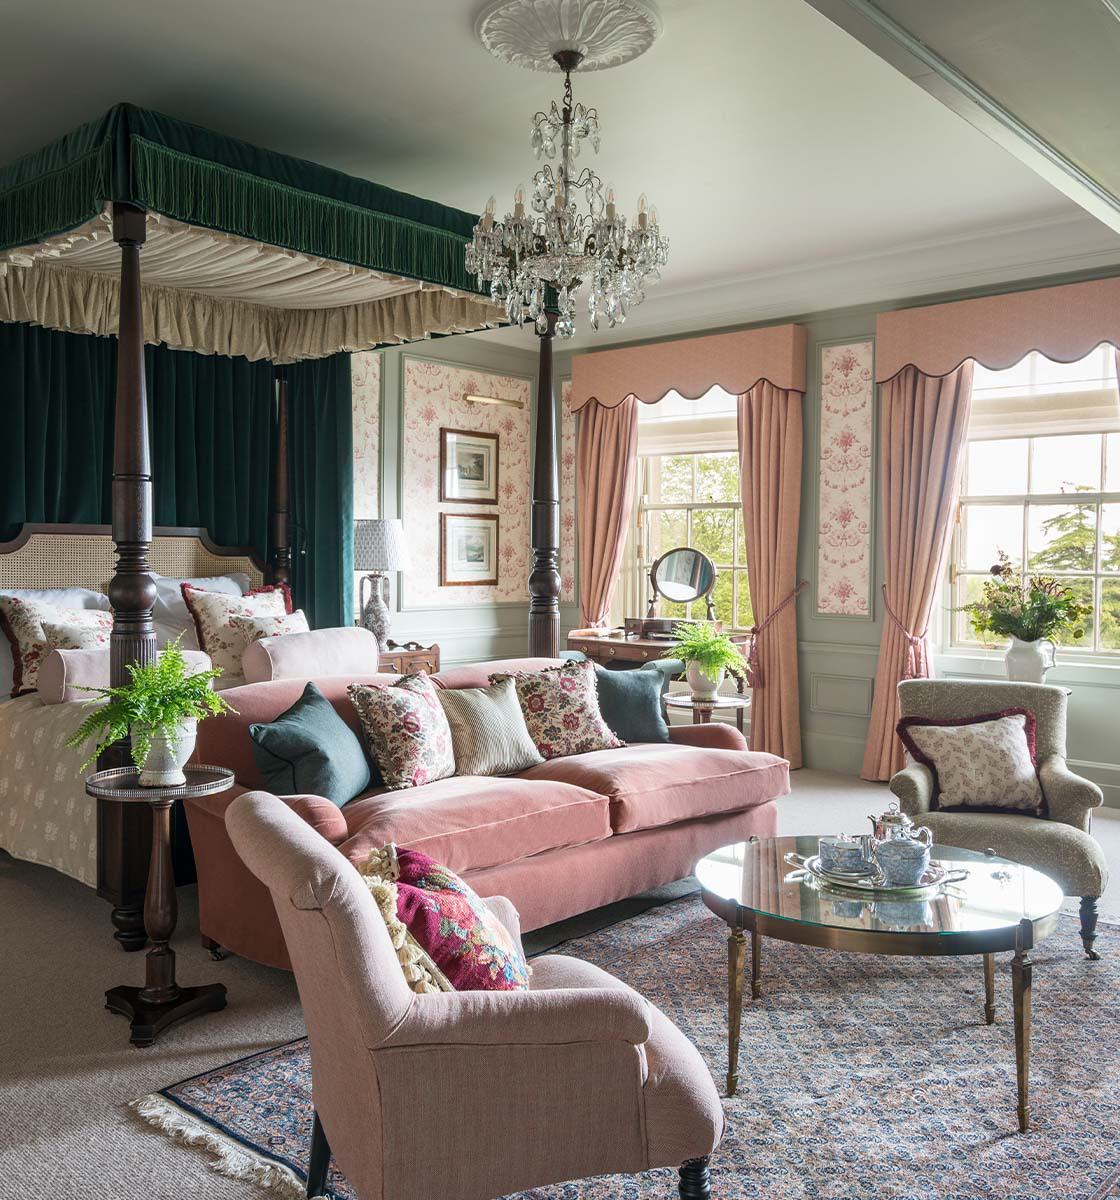 Bedroom with four poster bed and pale pink sofa